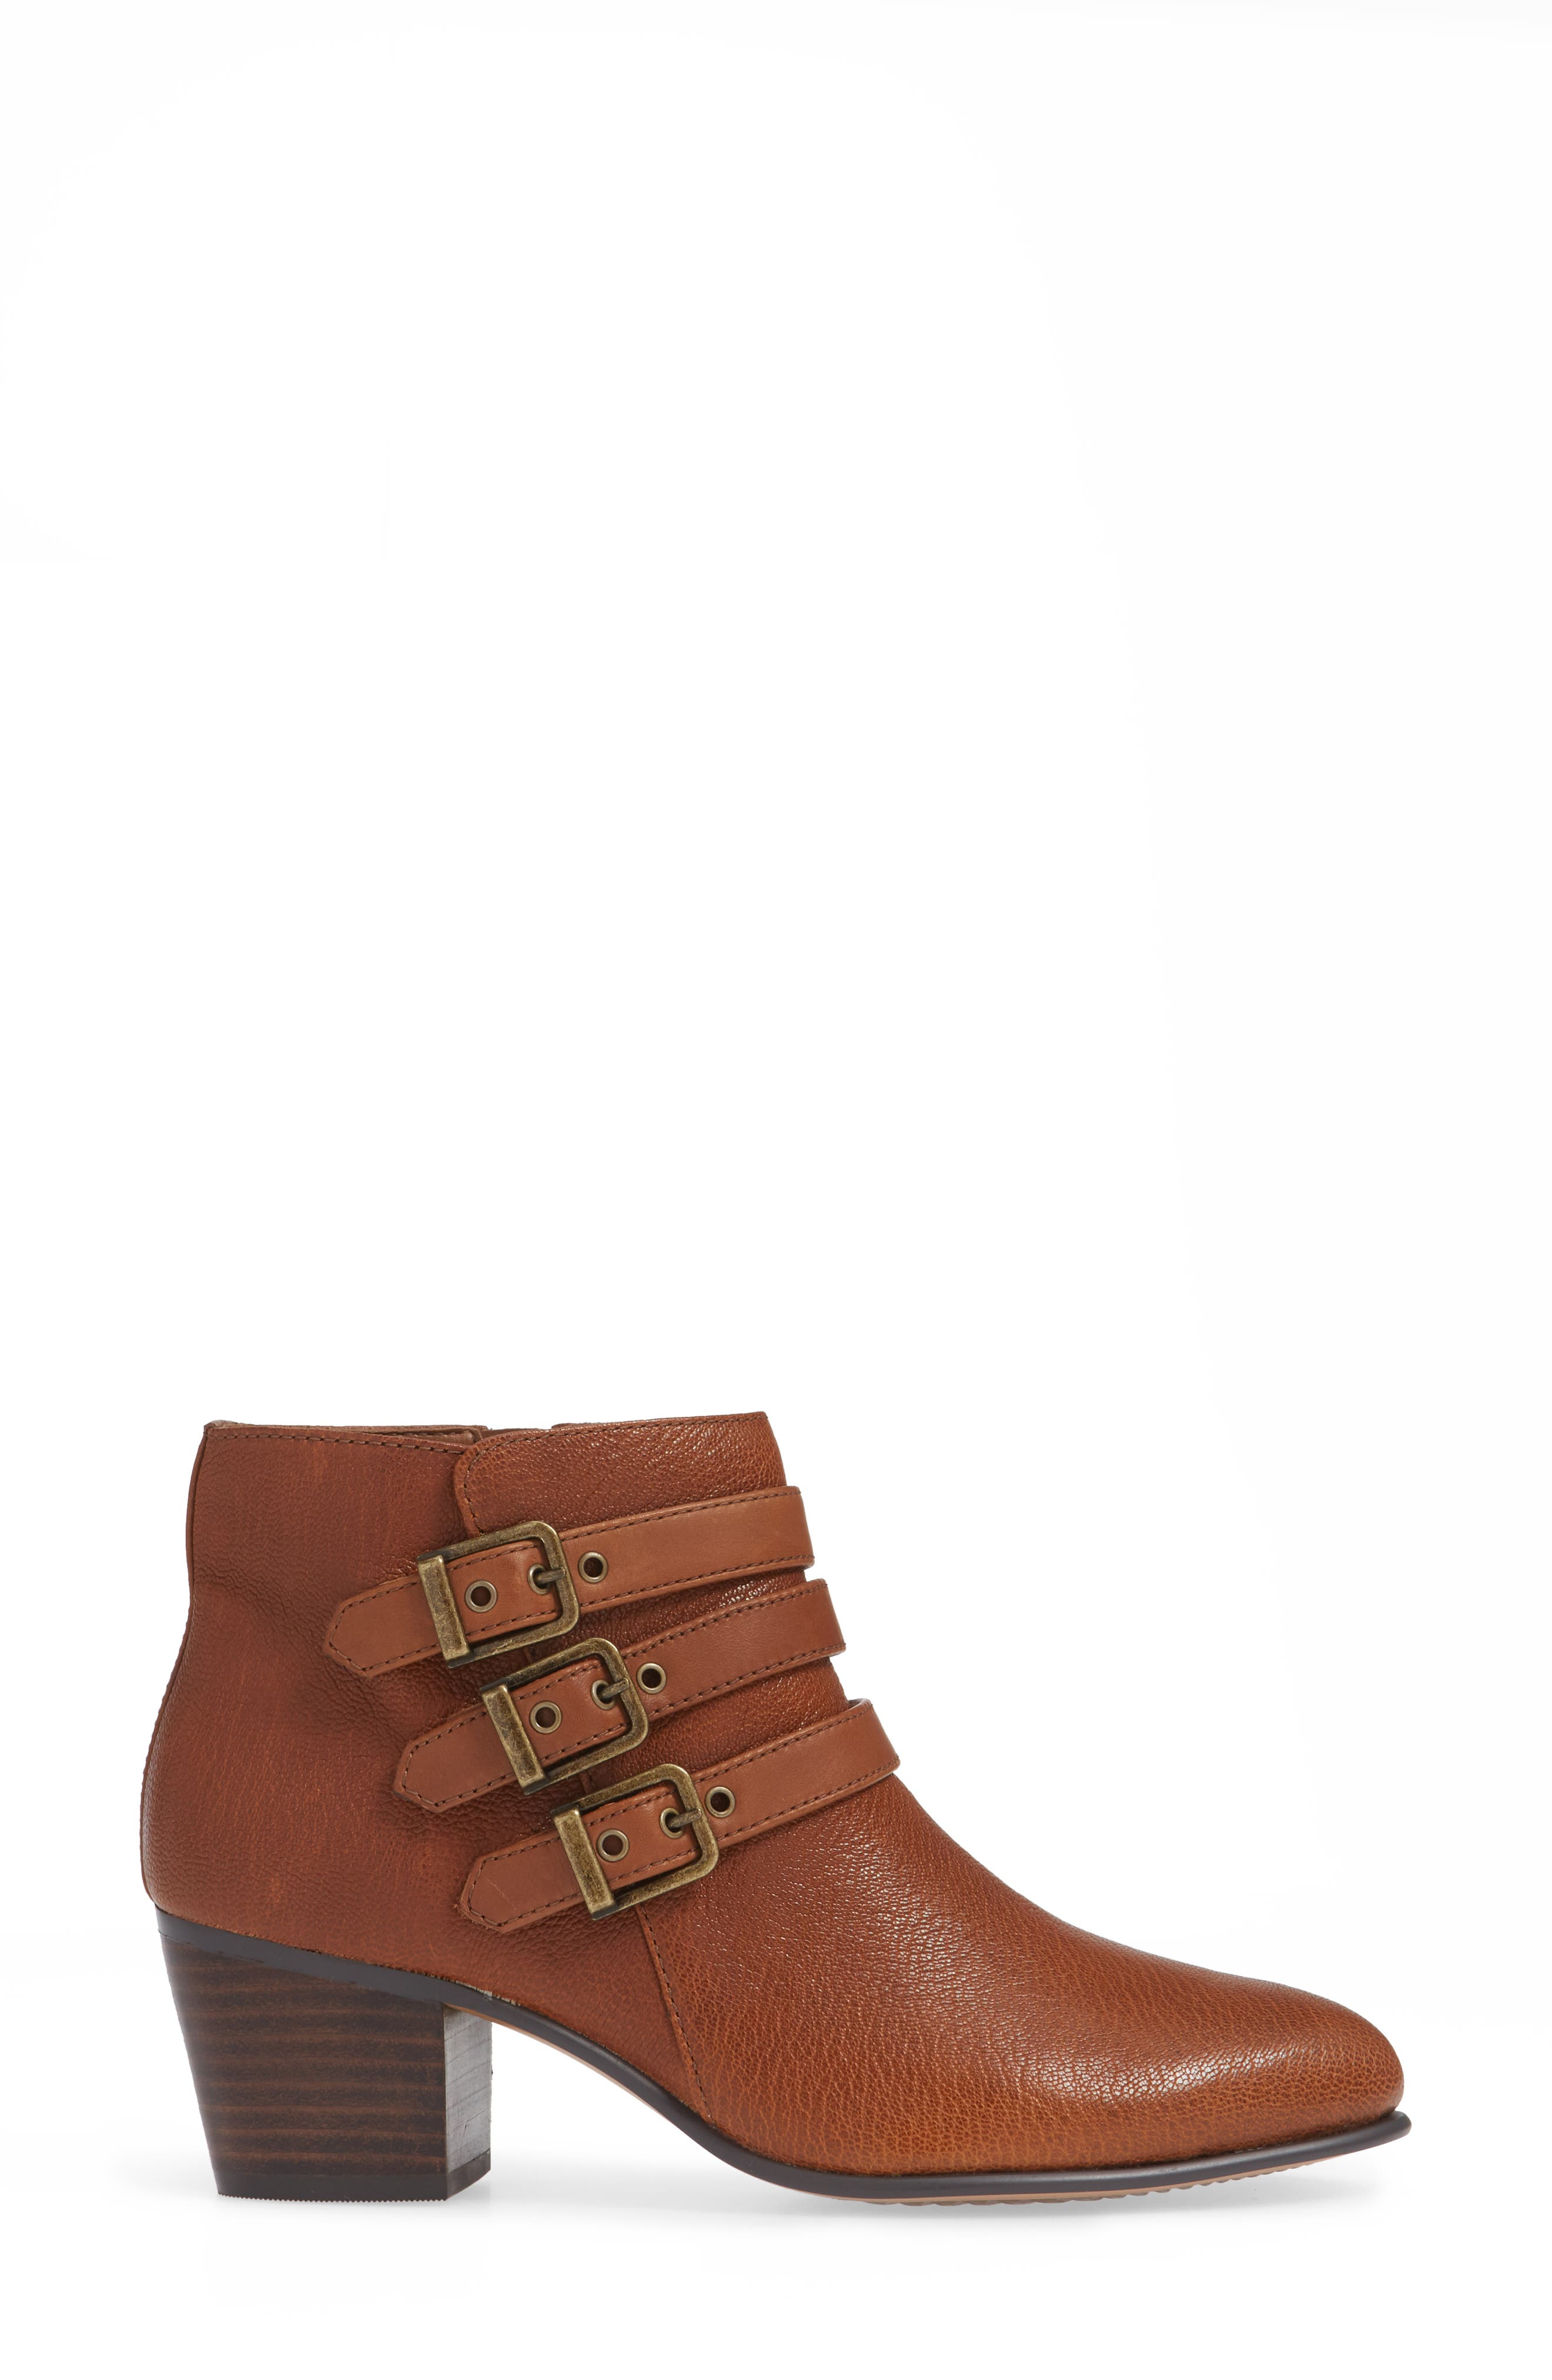 Maypearl Rayna Boot,                             Alternate thumbnail 3, color,                             DARK TAN LEATHER